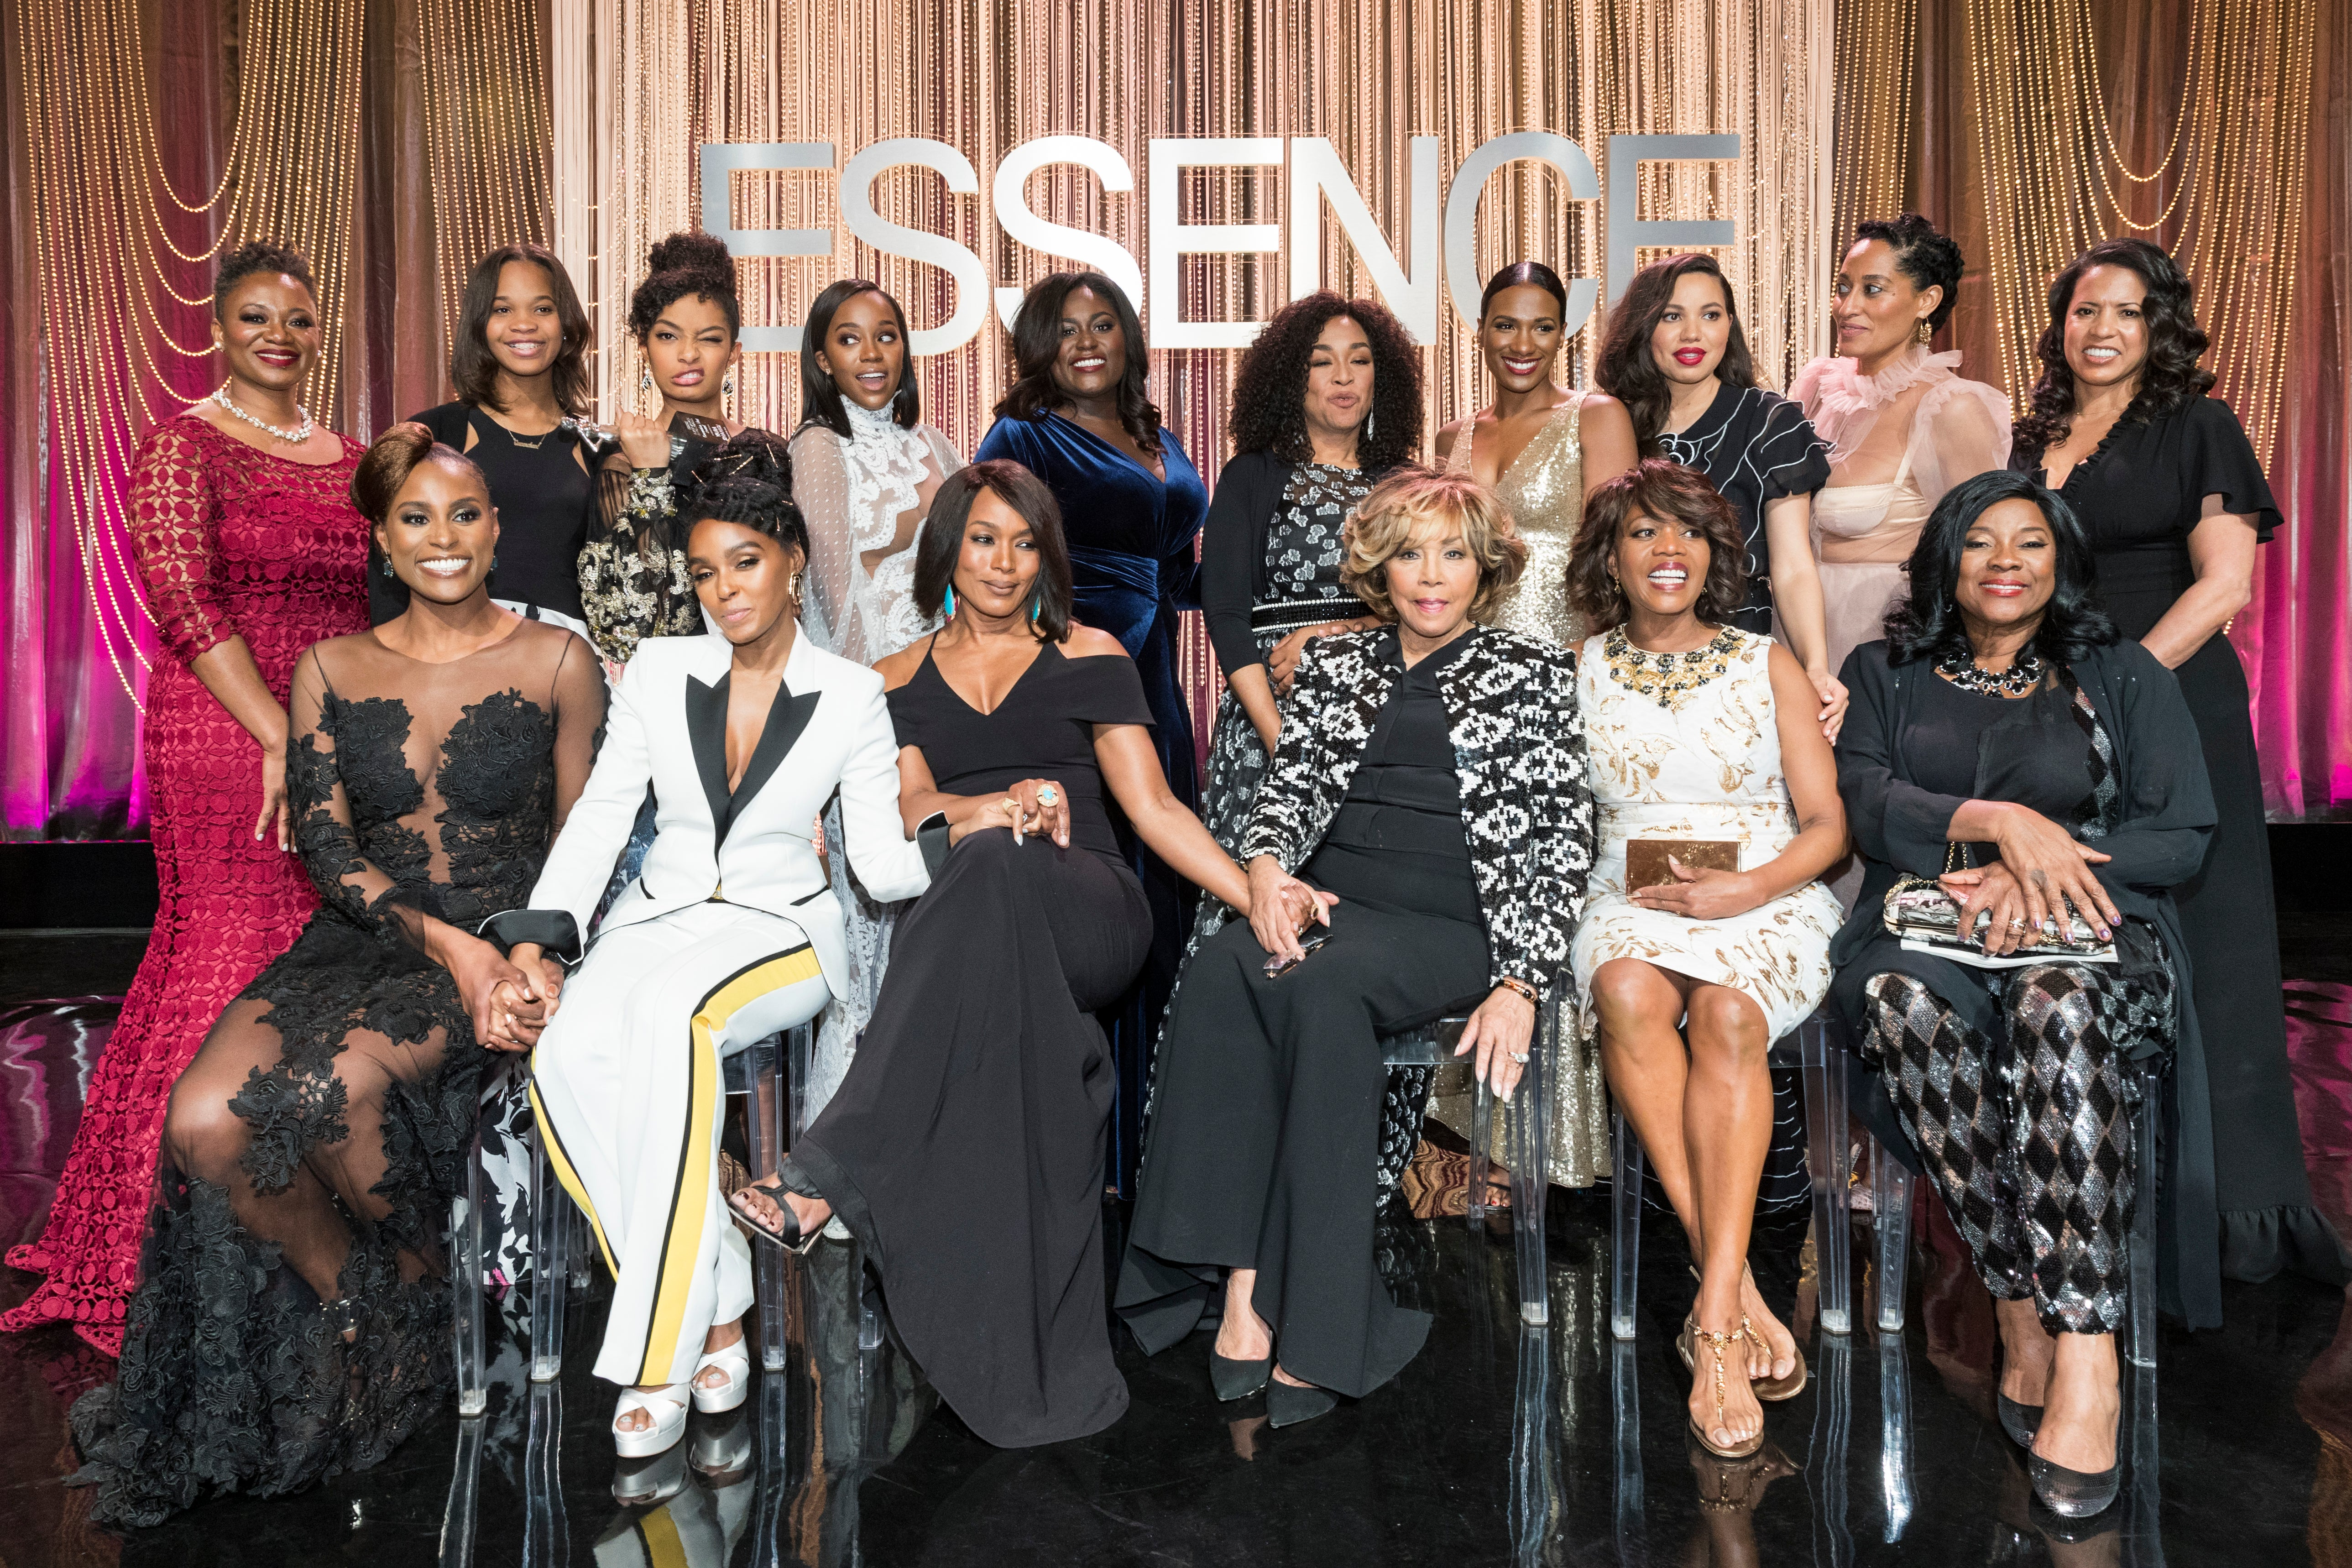 Jurnee Smollett, actress in Lovecraft Country, joins a slew of Black women in Hollywood during the ESSENCE Black Women In Hollywood Awards